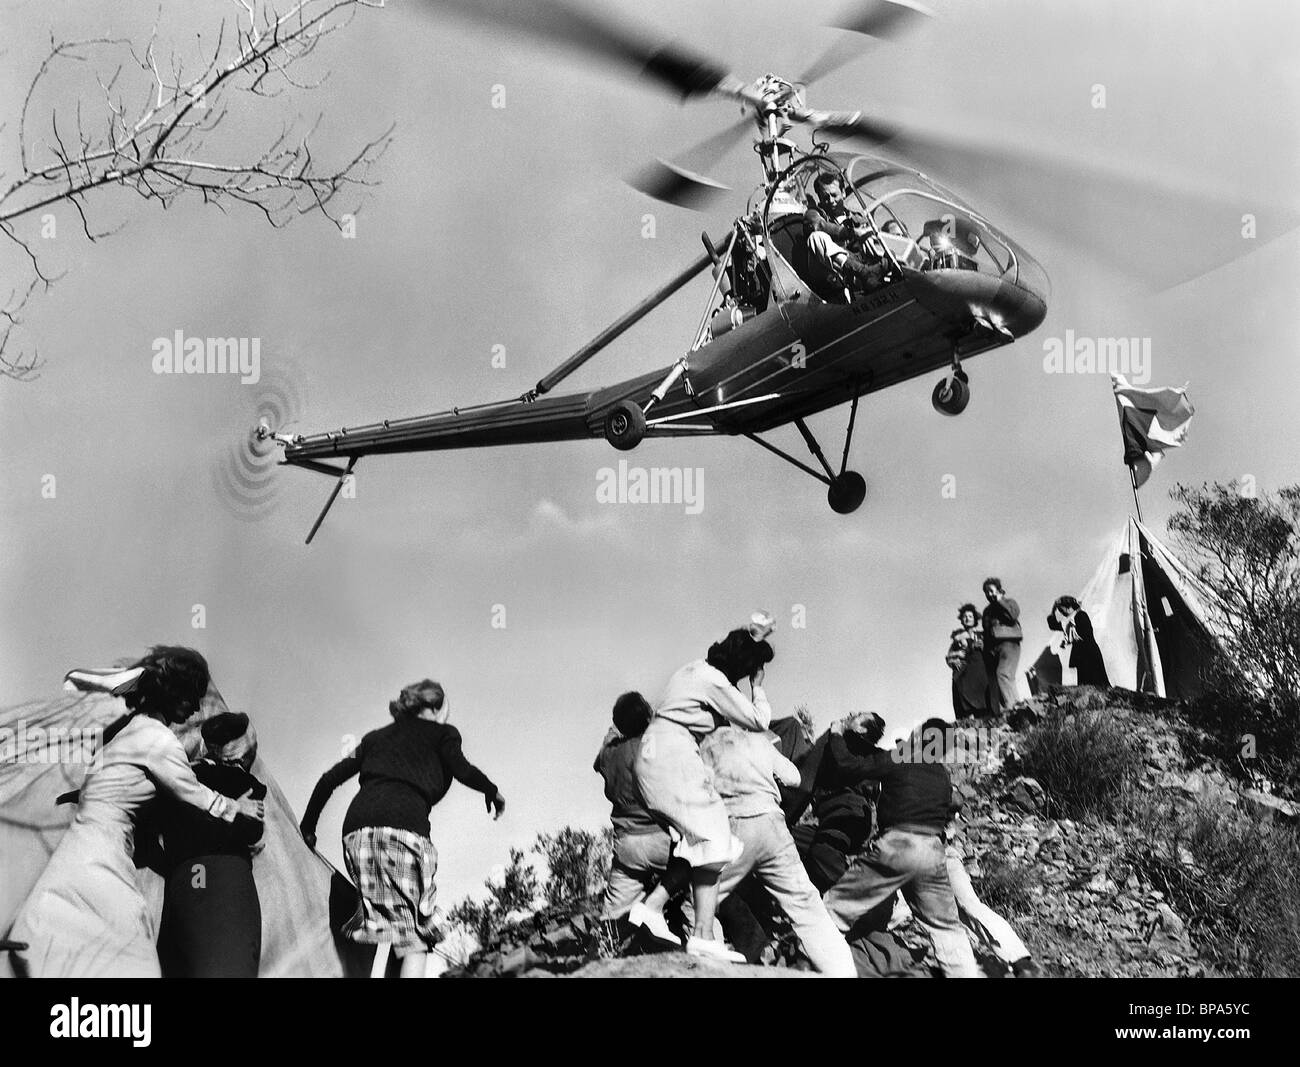 HELICOPTER SCENE WHEN WORLDS COLLIDE (1951 Stock Photo: 30957008 ...